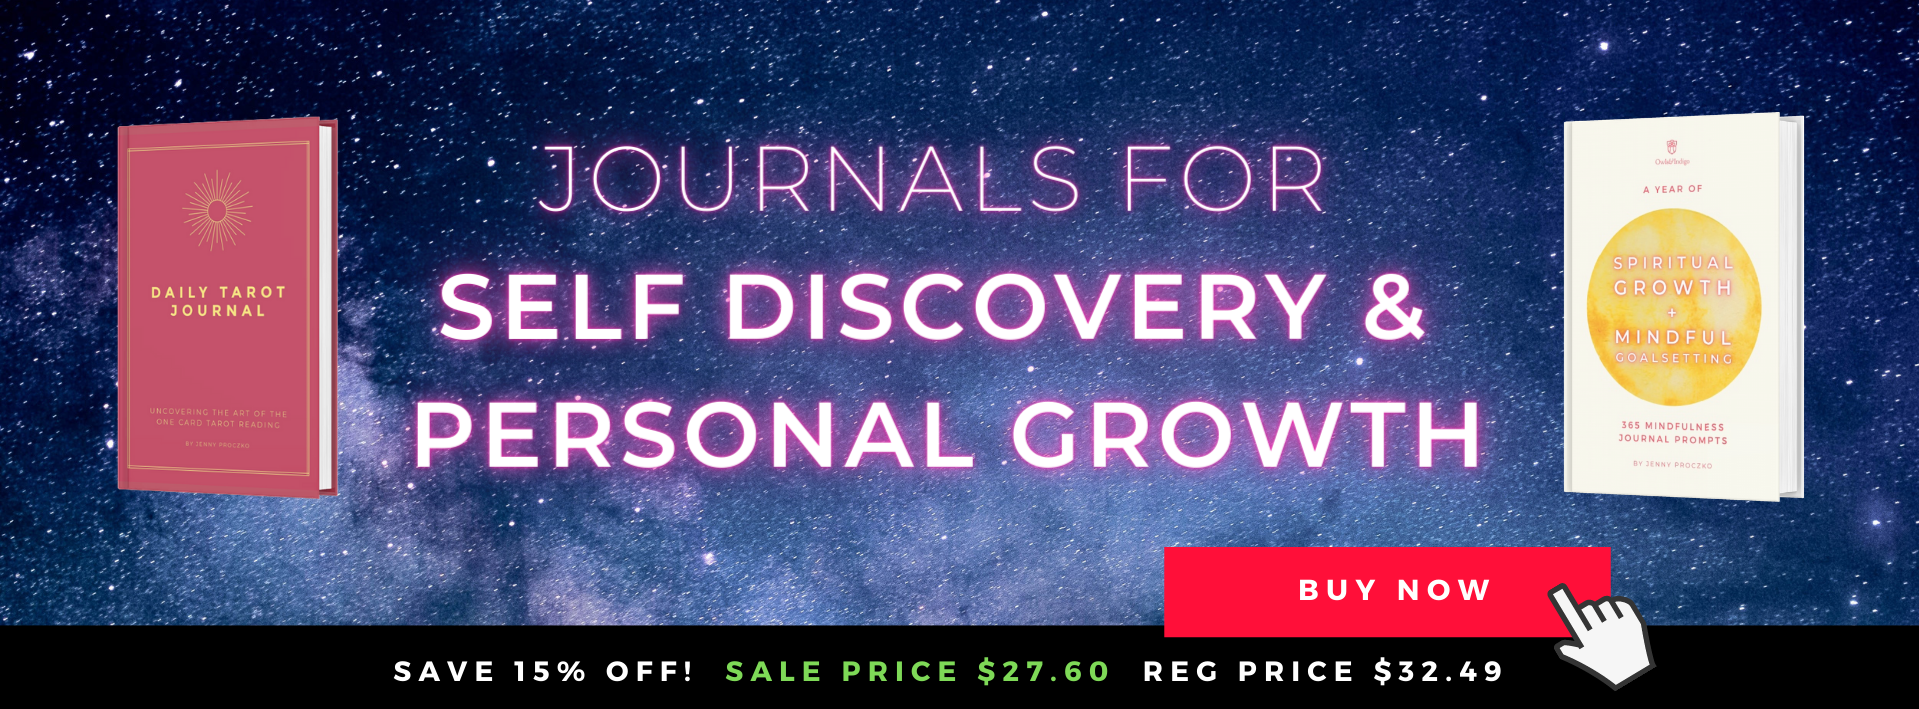 Two Awesome Journals For Self Discovery & Personal Growth by Owls & Indigo